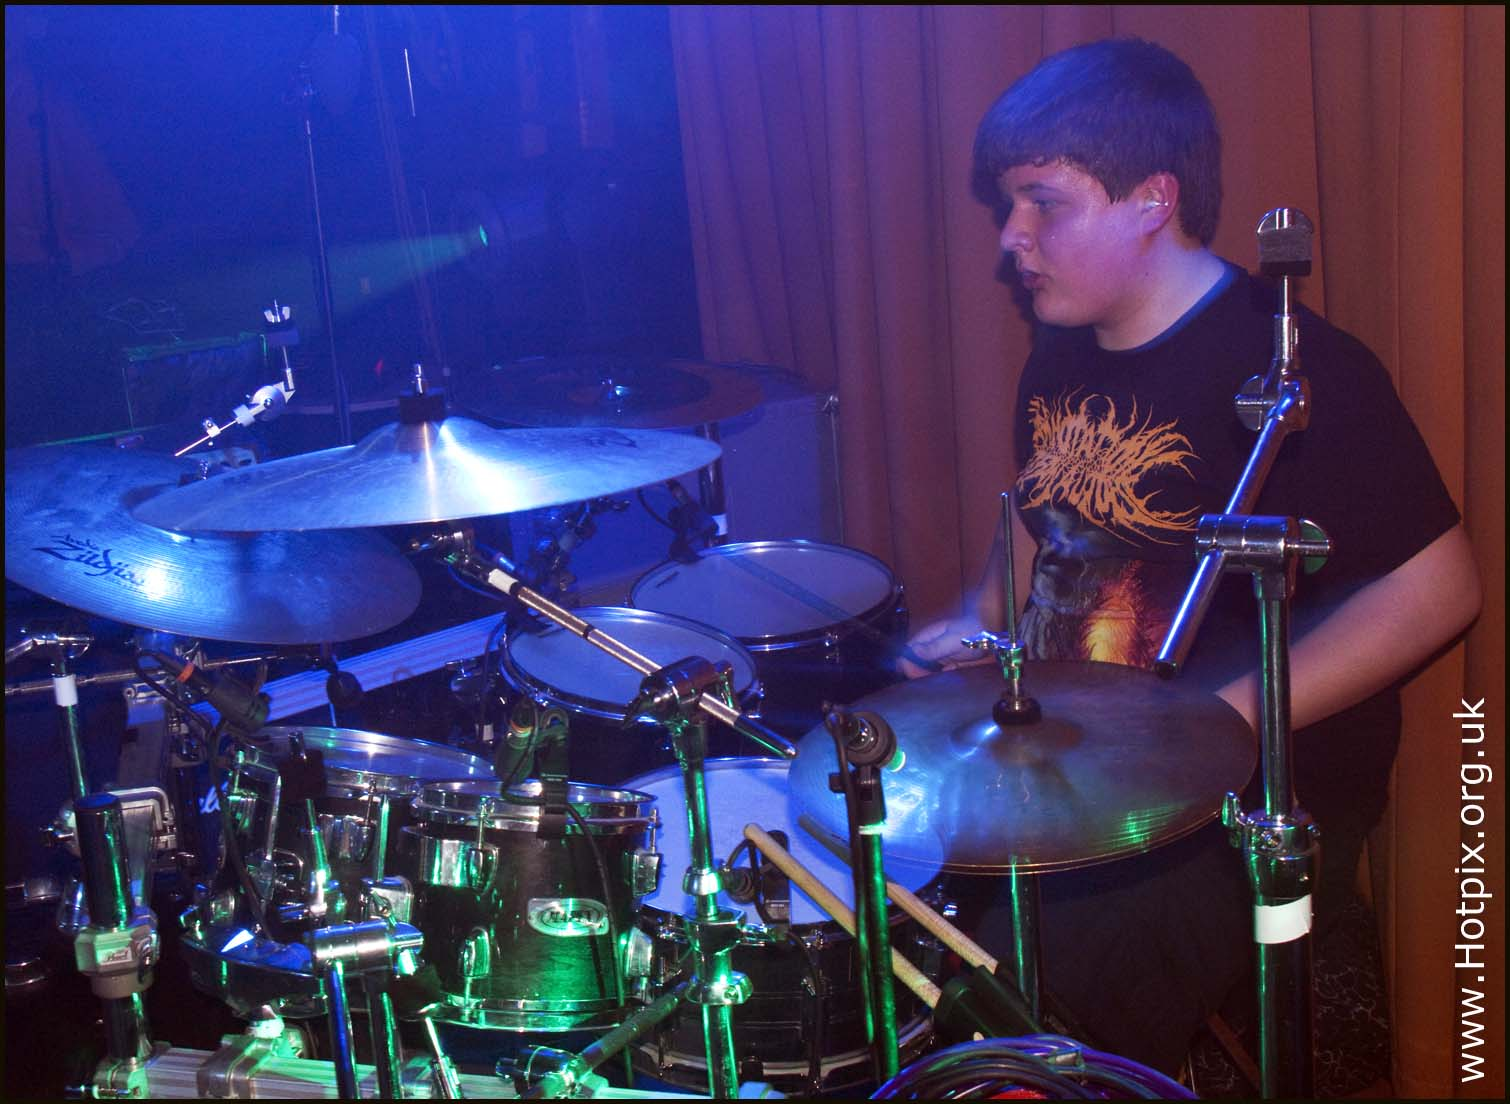 AQOE,crewe,band,group,metal,grind,core,grindcore,concert,banned,gig,banned network,drum,drummer,percusion,network,nick,hughes,DAN,development,Arts,Northwich,Cheshire,West,Chester,Night,Winnington,Rec,Park,Road,Rd,recreation,club,UK,england,rock,music,musician,guitar,guitarist,vocals,vocalist,hotpix,tonysmith,tony,smith,hotpixuk,live,stage,gigs,bands,musicians,performing,playing,MIS,ActiveH,housingtechnology